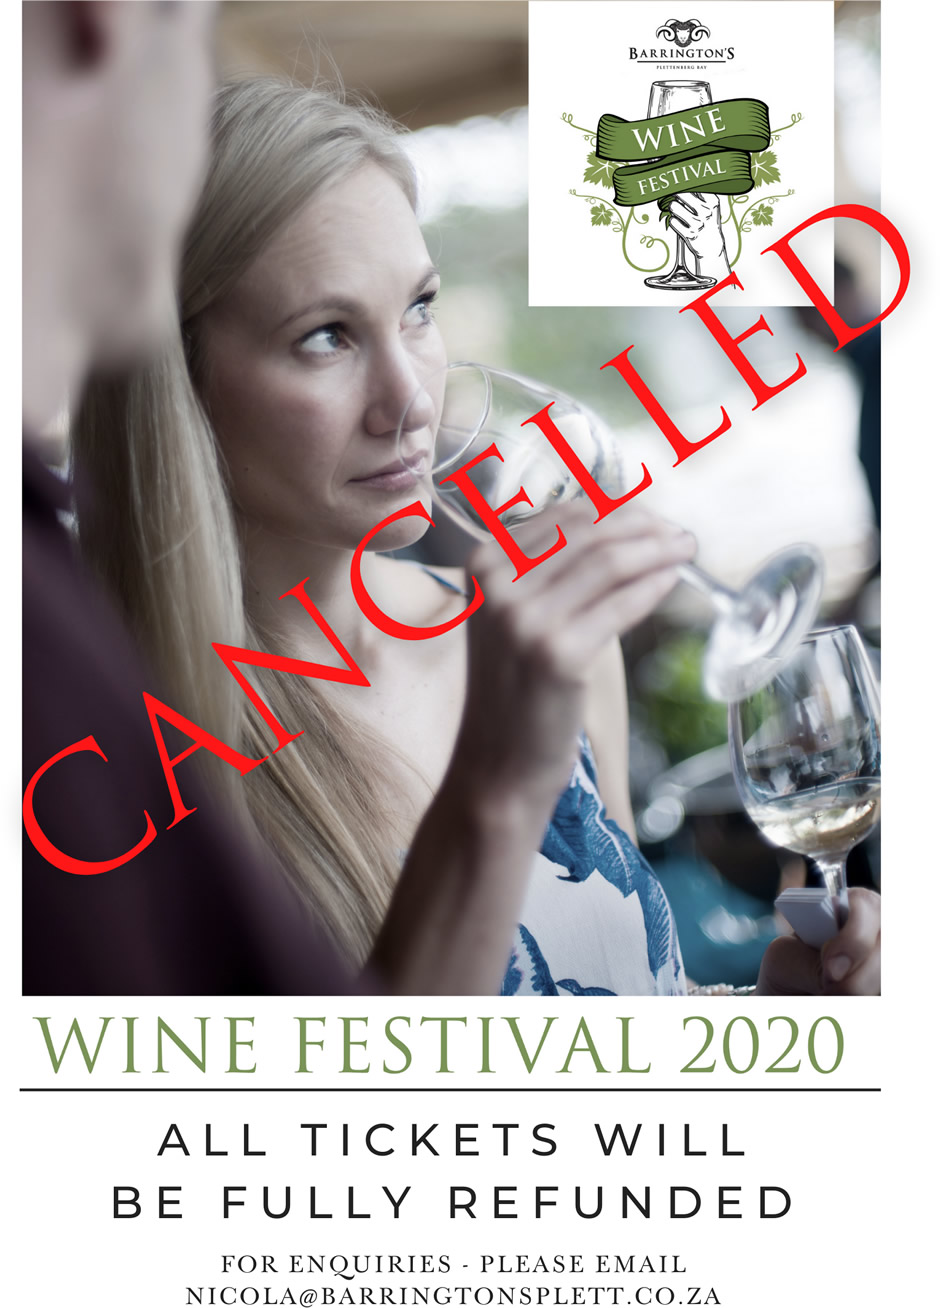 Wine Festival 2020 - CANCELLED